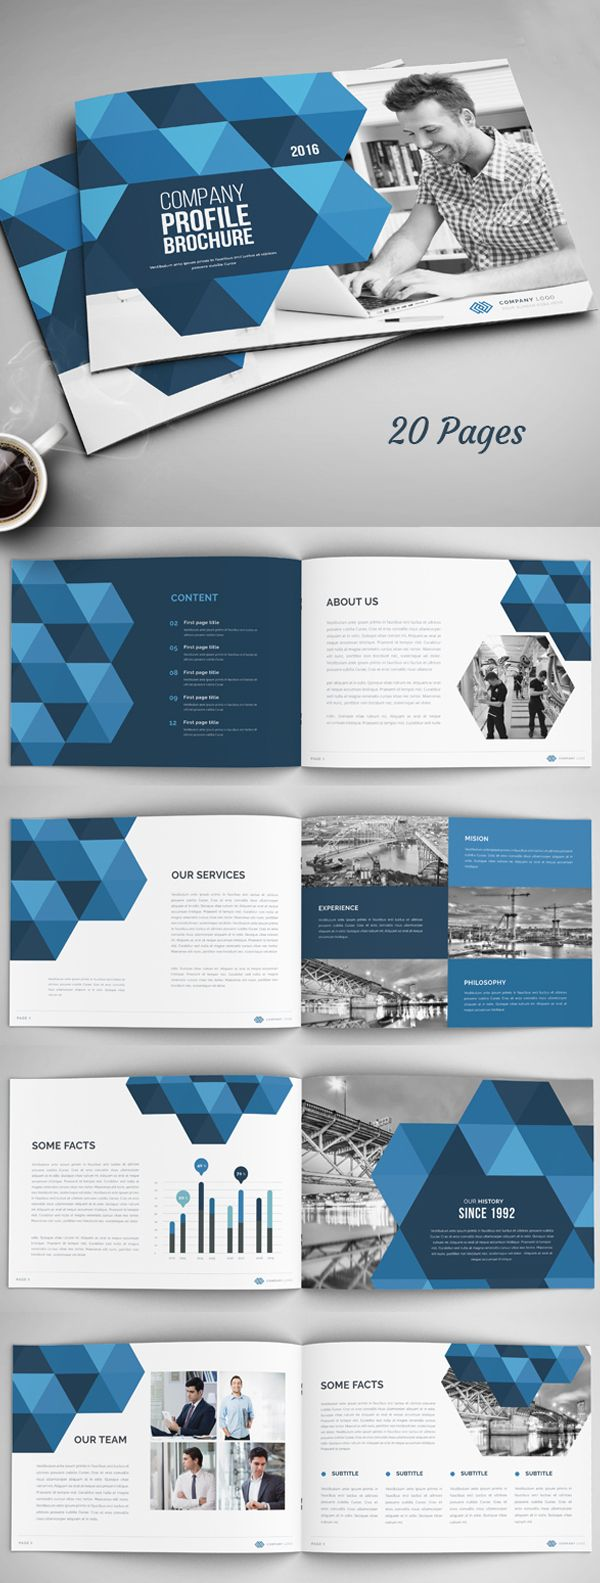 7 best Company profile images on Pinterest | Brochure template ...